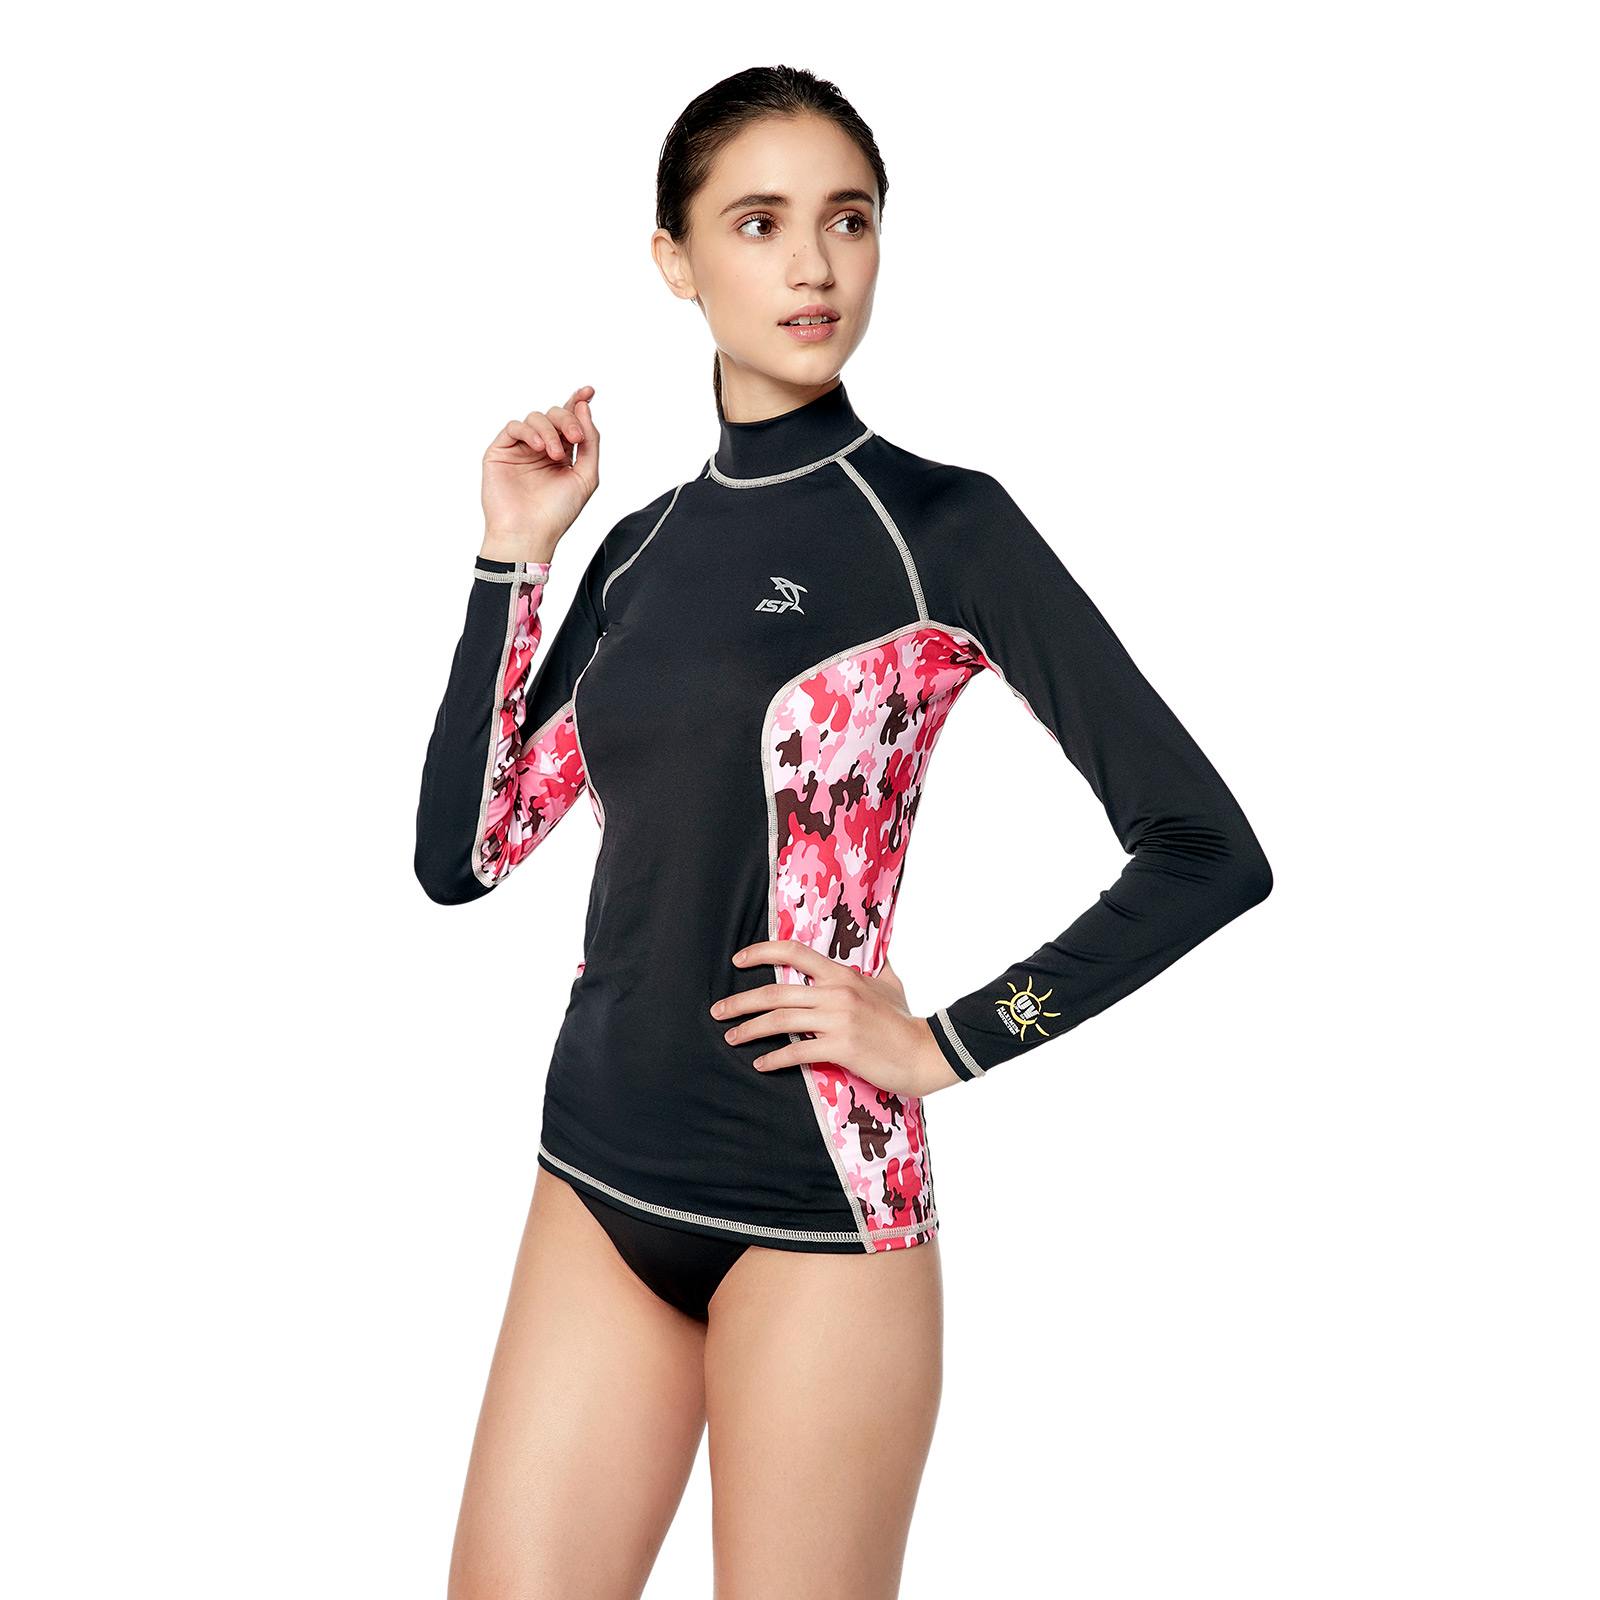 1ff0219297 IST Diving System :: RECREATIONAL :: WETSUITS & DIVE SKINS ...